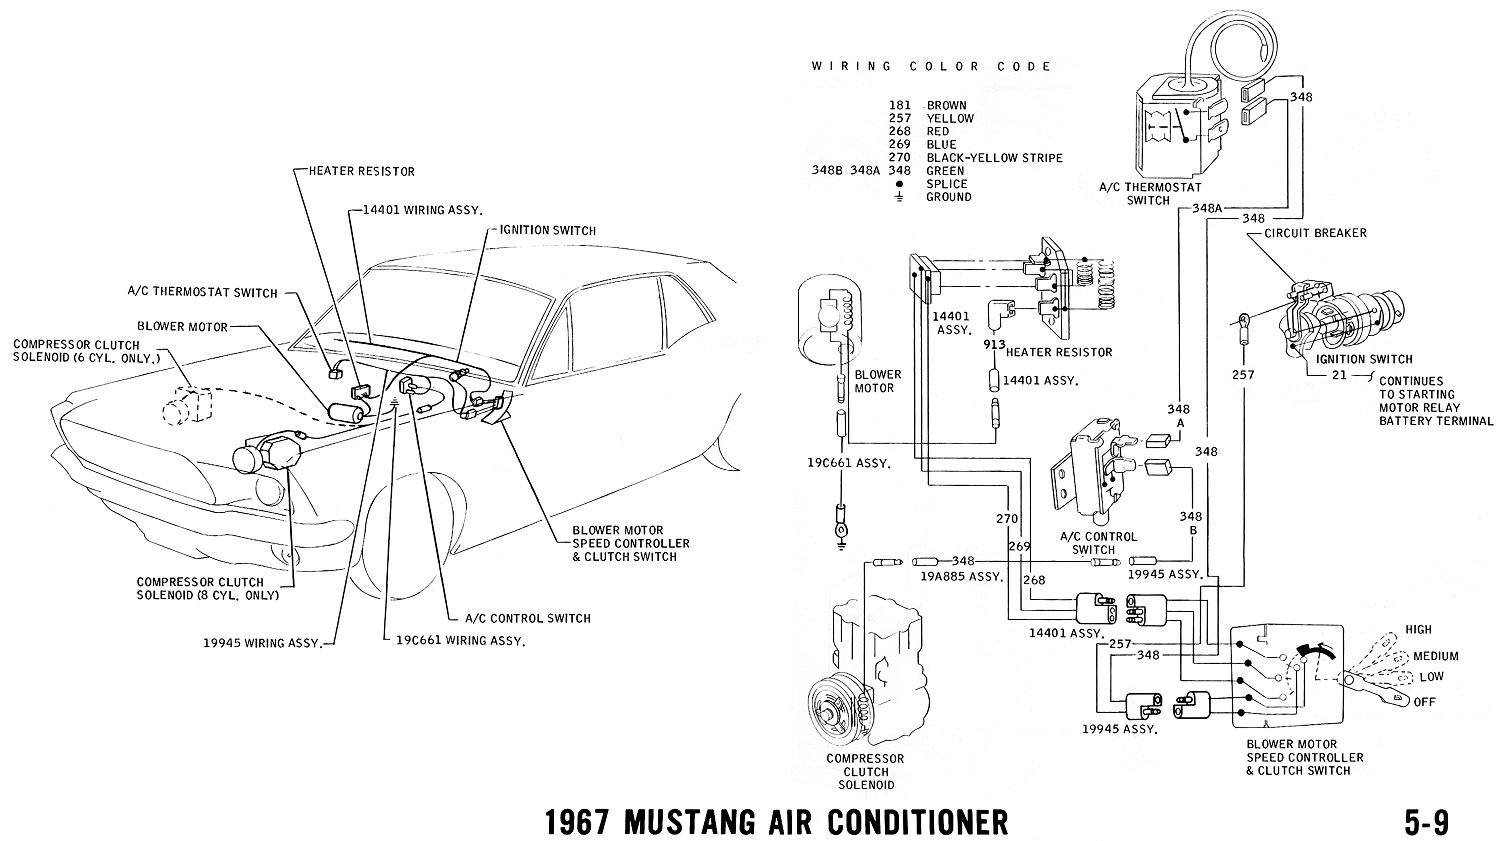 1967 Mustang Wiring And Vacuum Diagrams Average Joe Restoration 67 John Deere 110 Diagram Pictorial Schematic